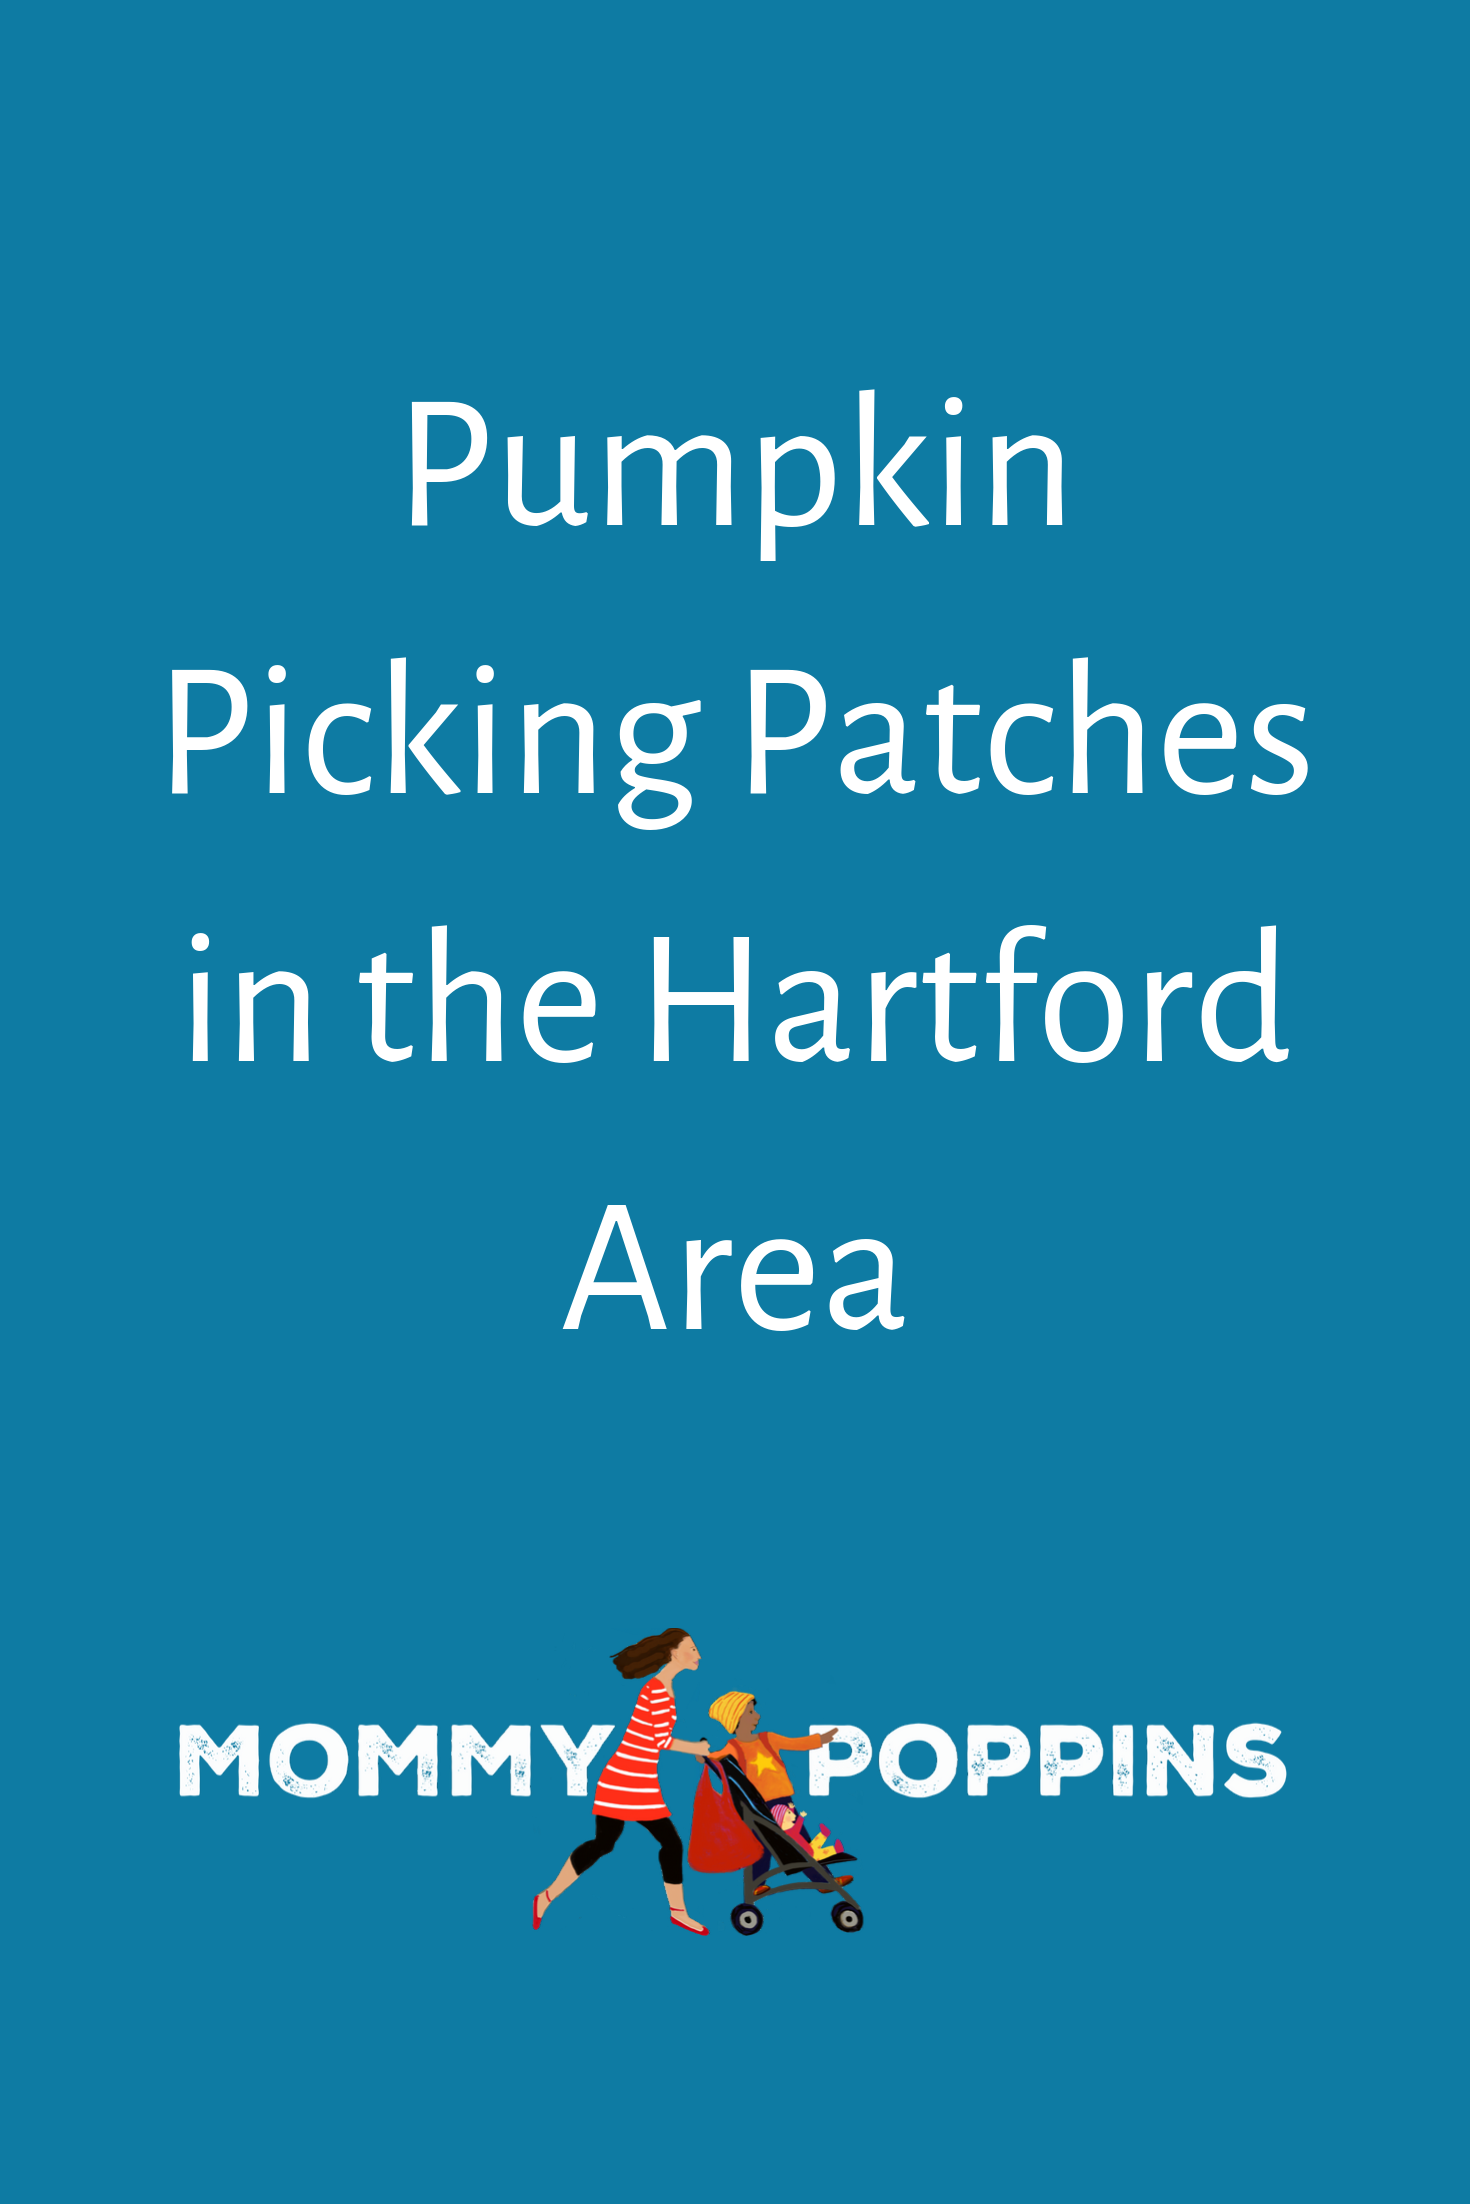 Pumpkin Patches in the Hartford Area Nyc with kids, Free